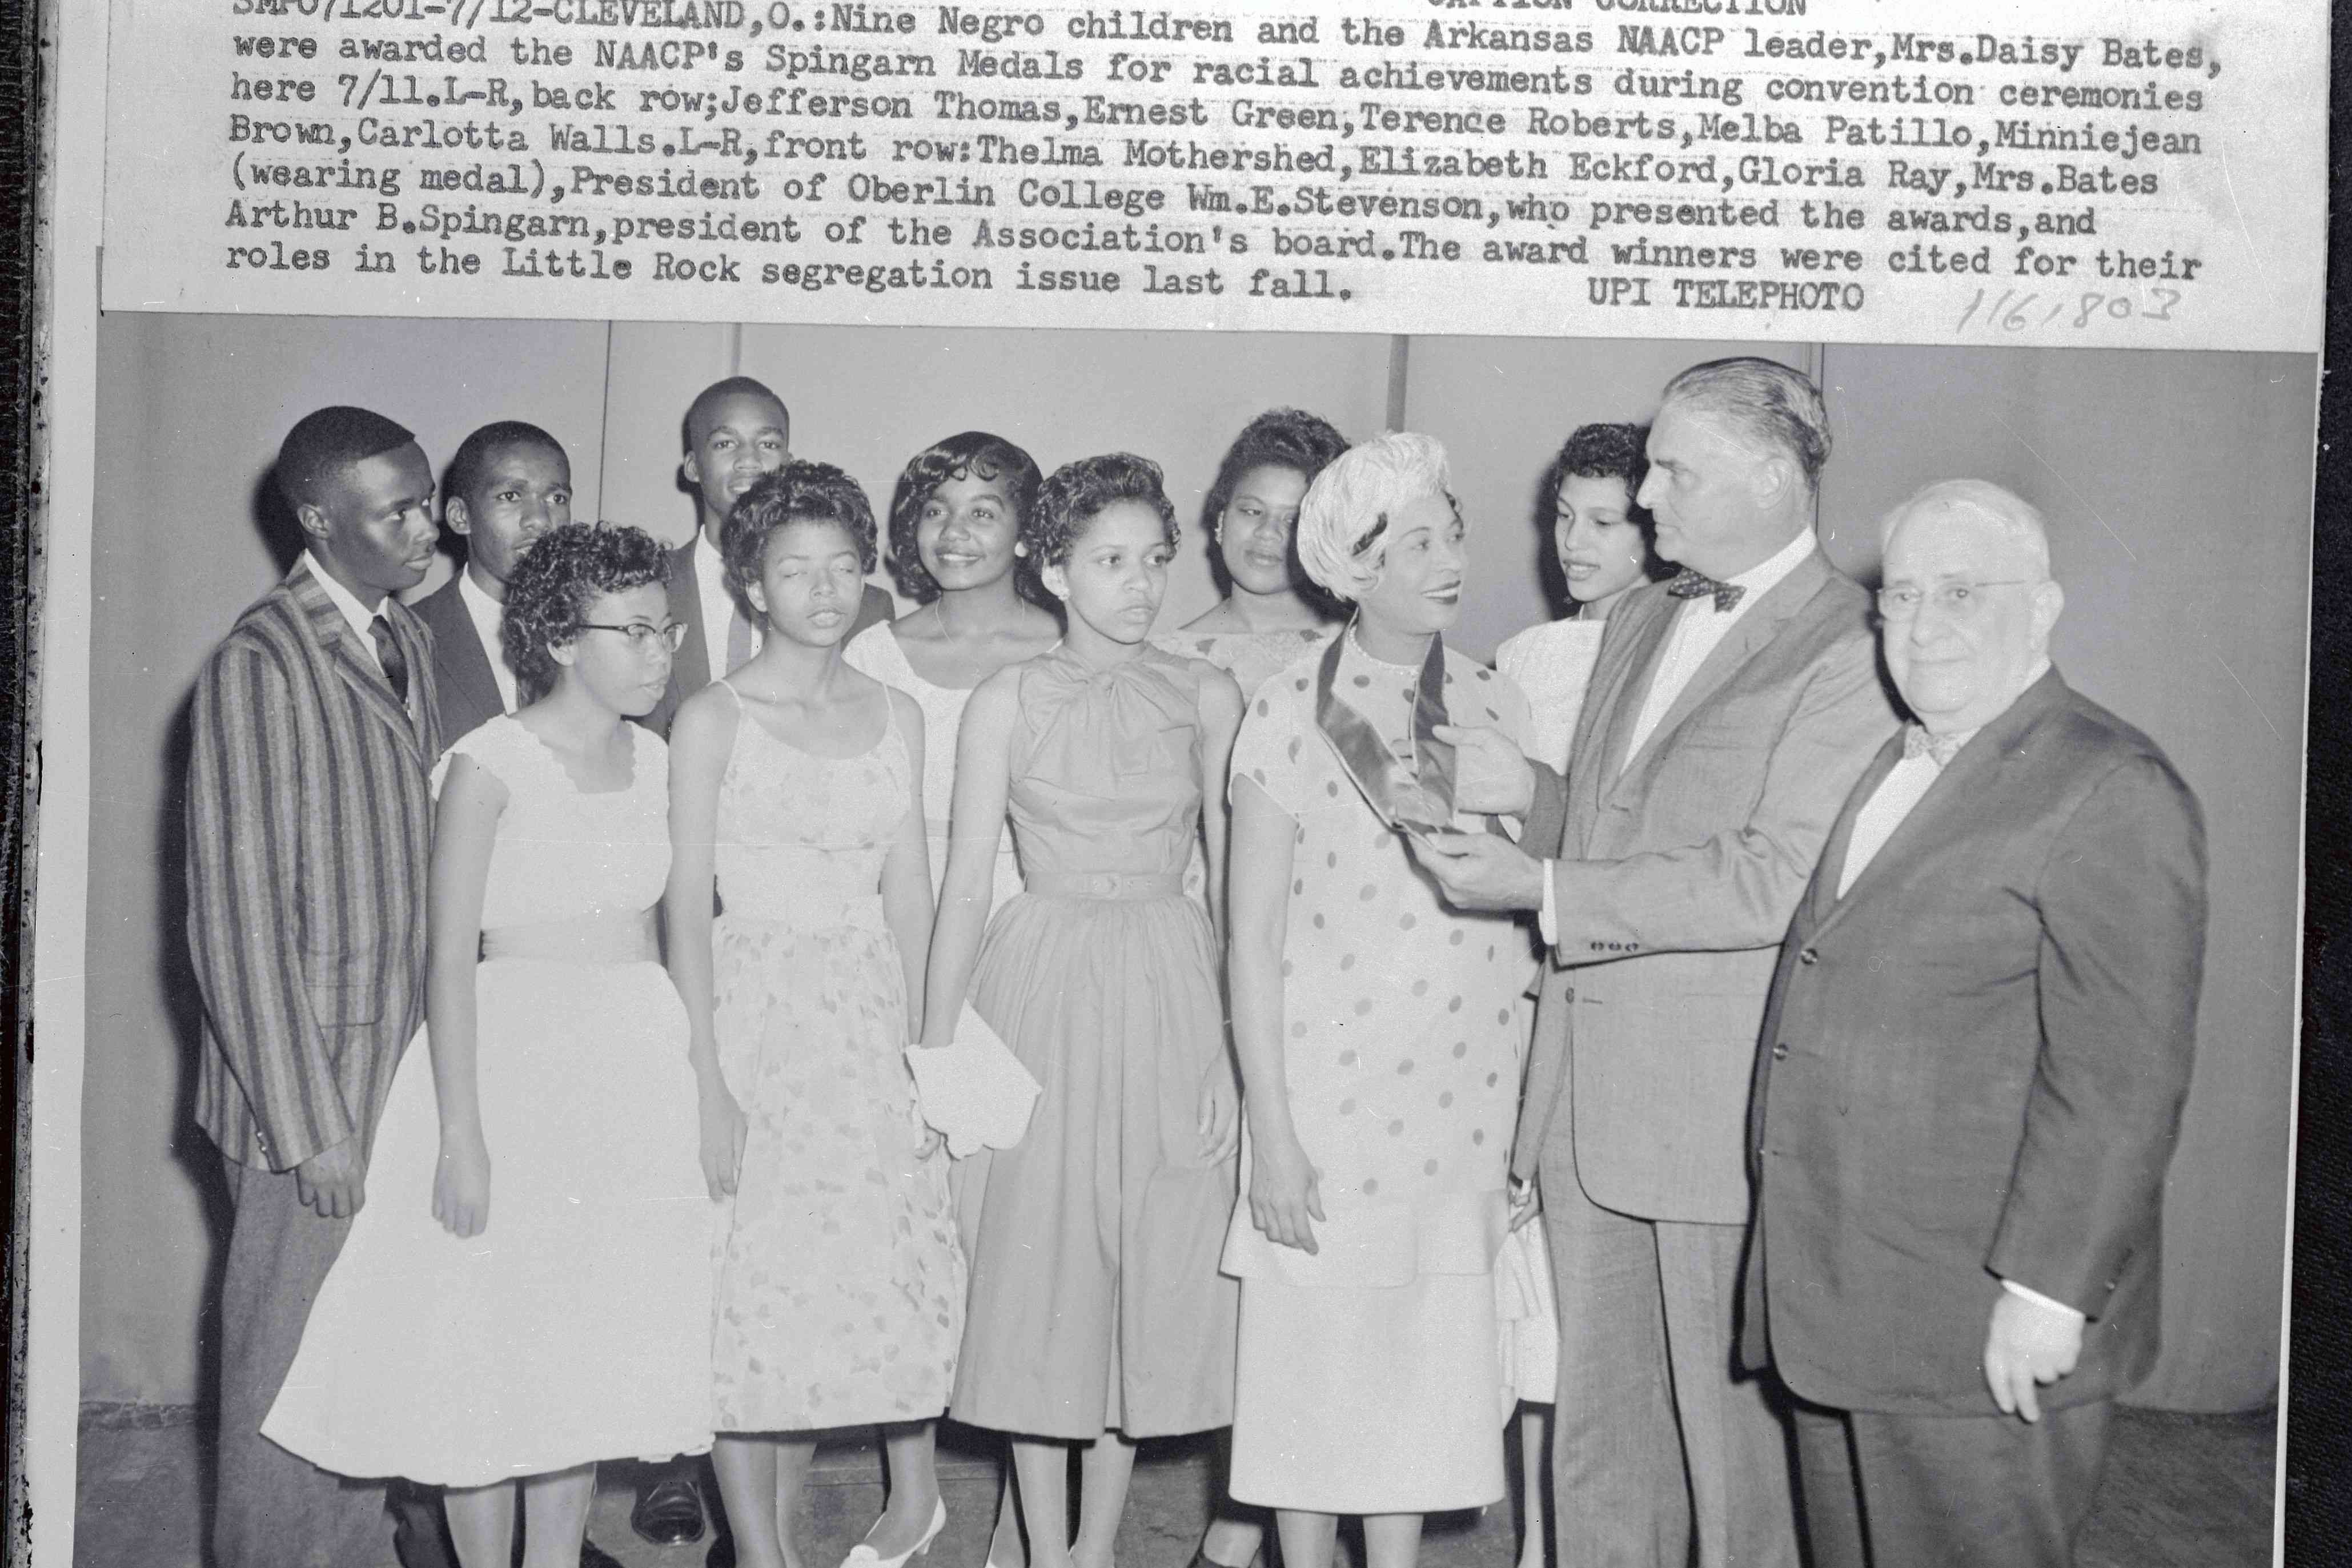 Newspaper article showing Daisy Bates and Little Rock Nine being awarded the NAACP's 1958 Spingarn Medal